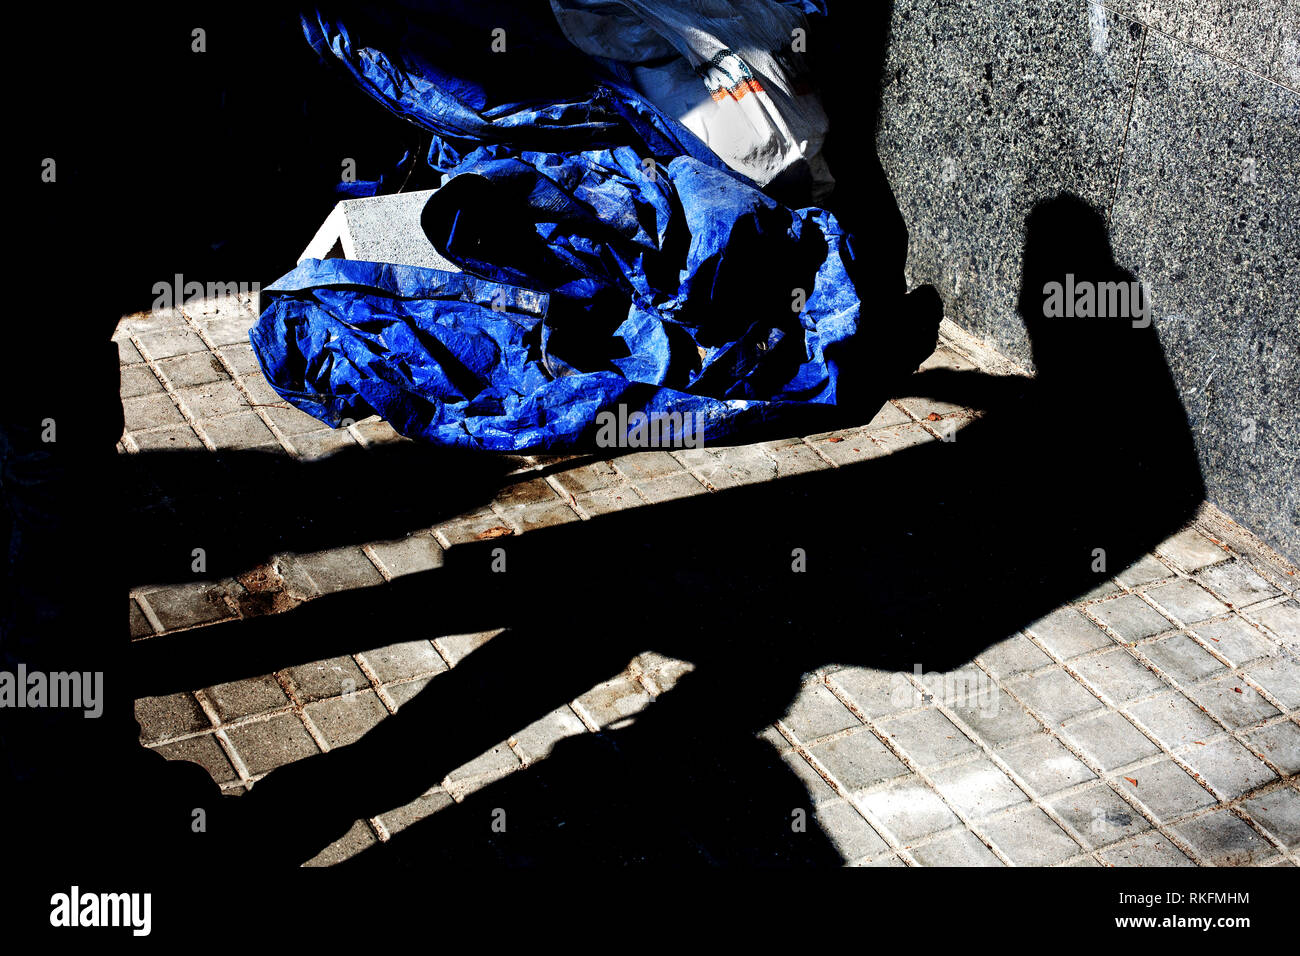 Shadow of old, hunched man in the street. - Stock Image